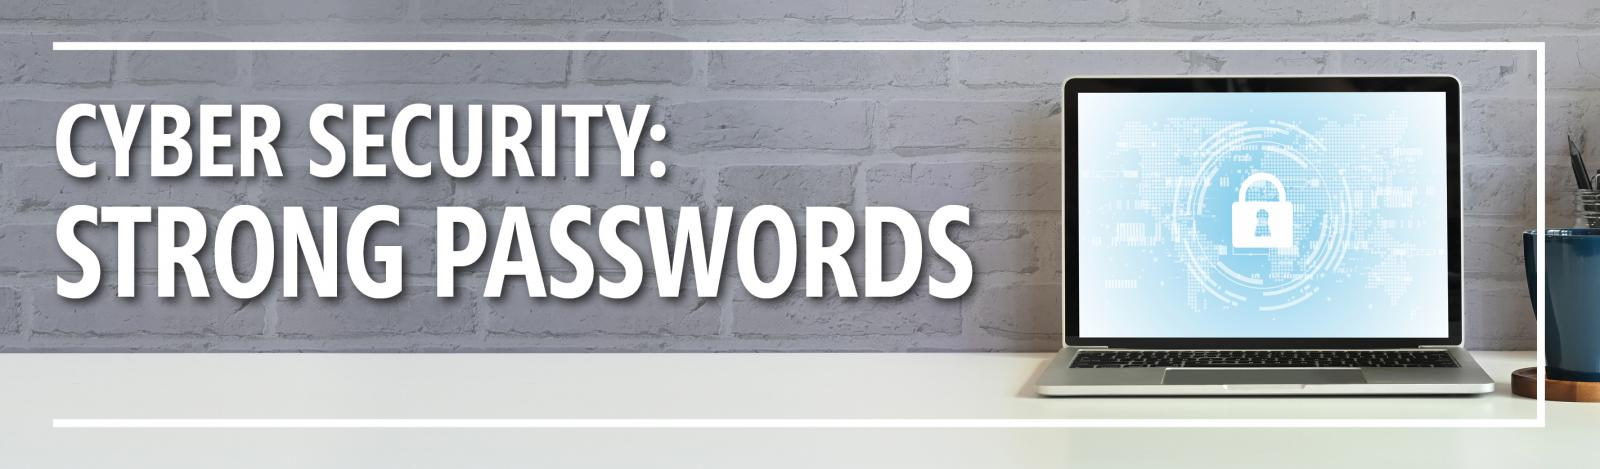 Cyber Security: Strong Passwords